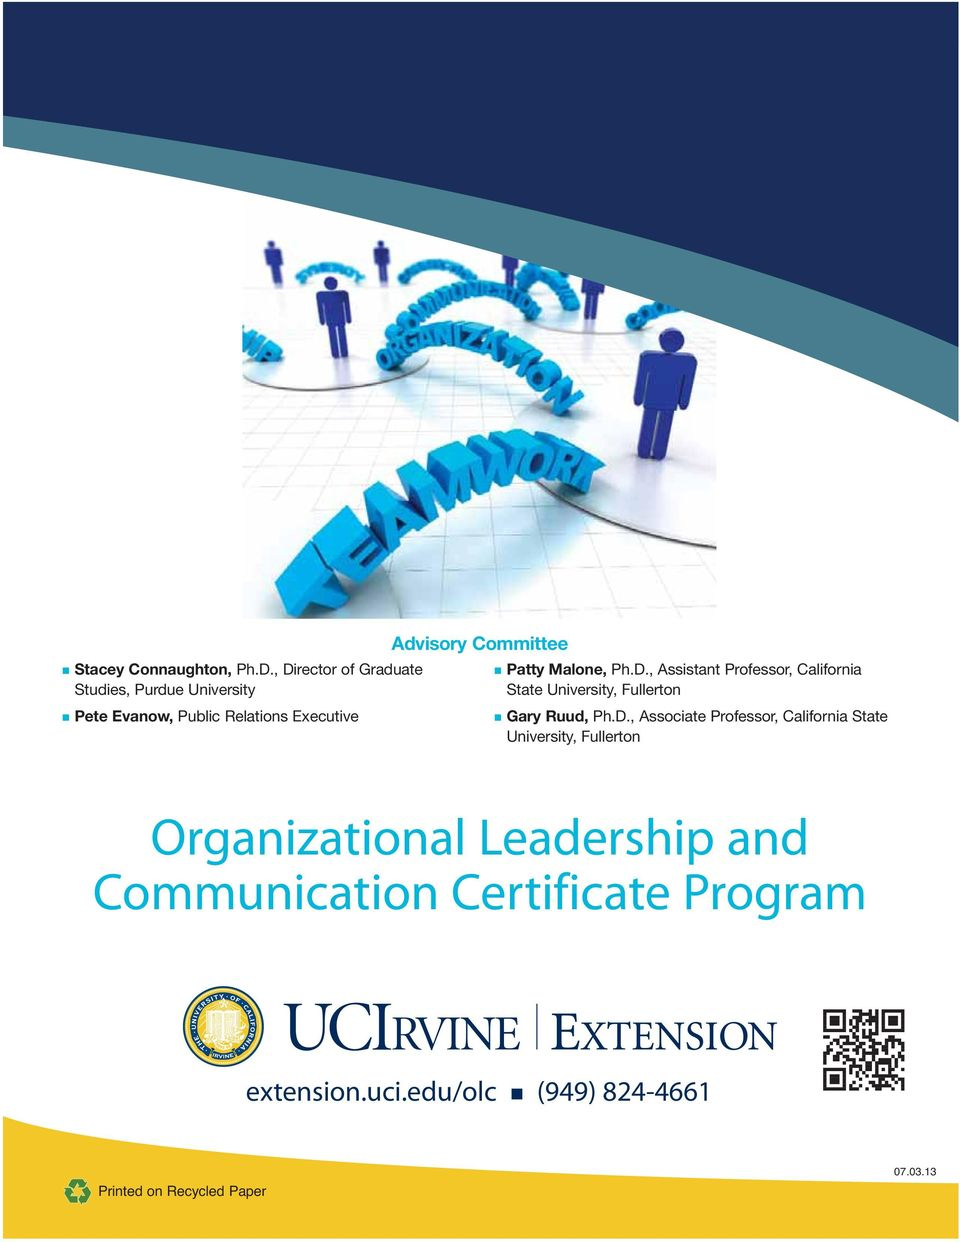 Organizational Leadership and Communication Certificate